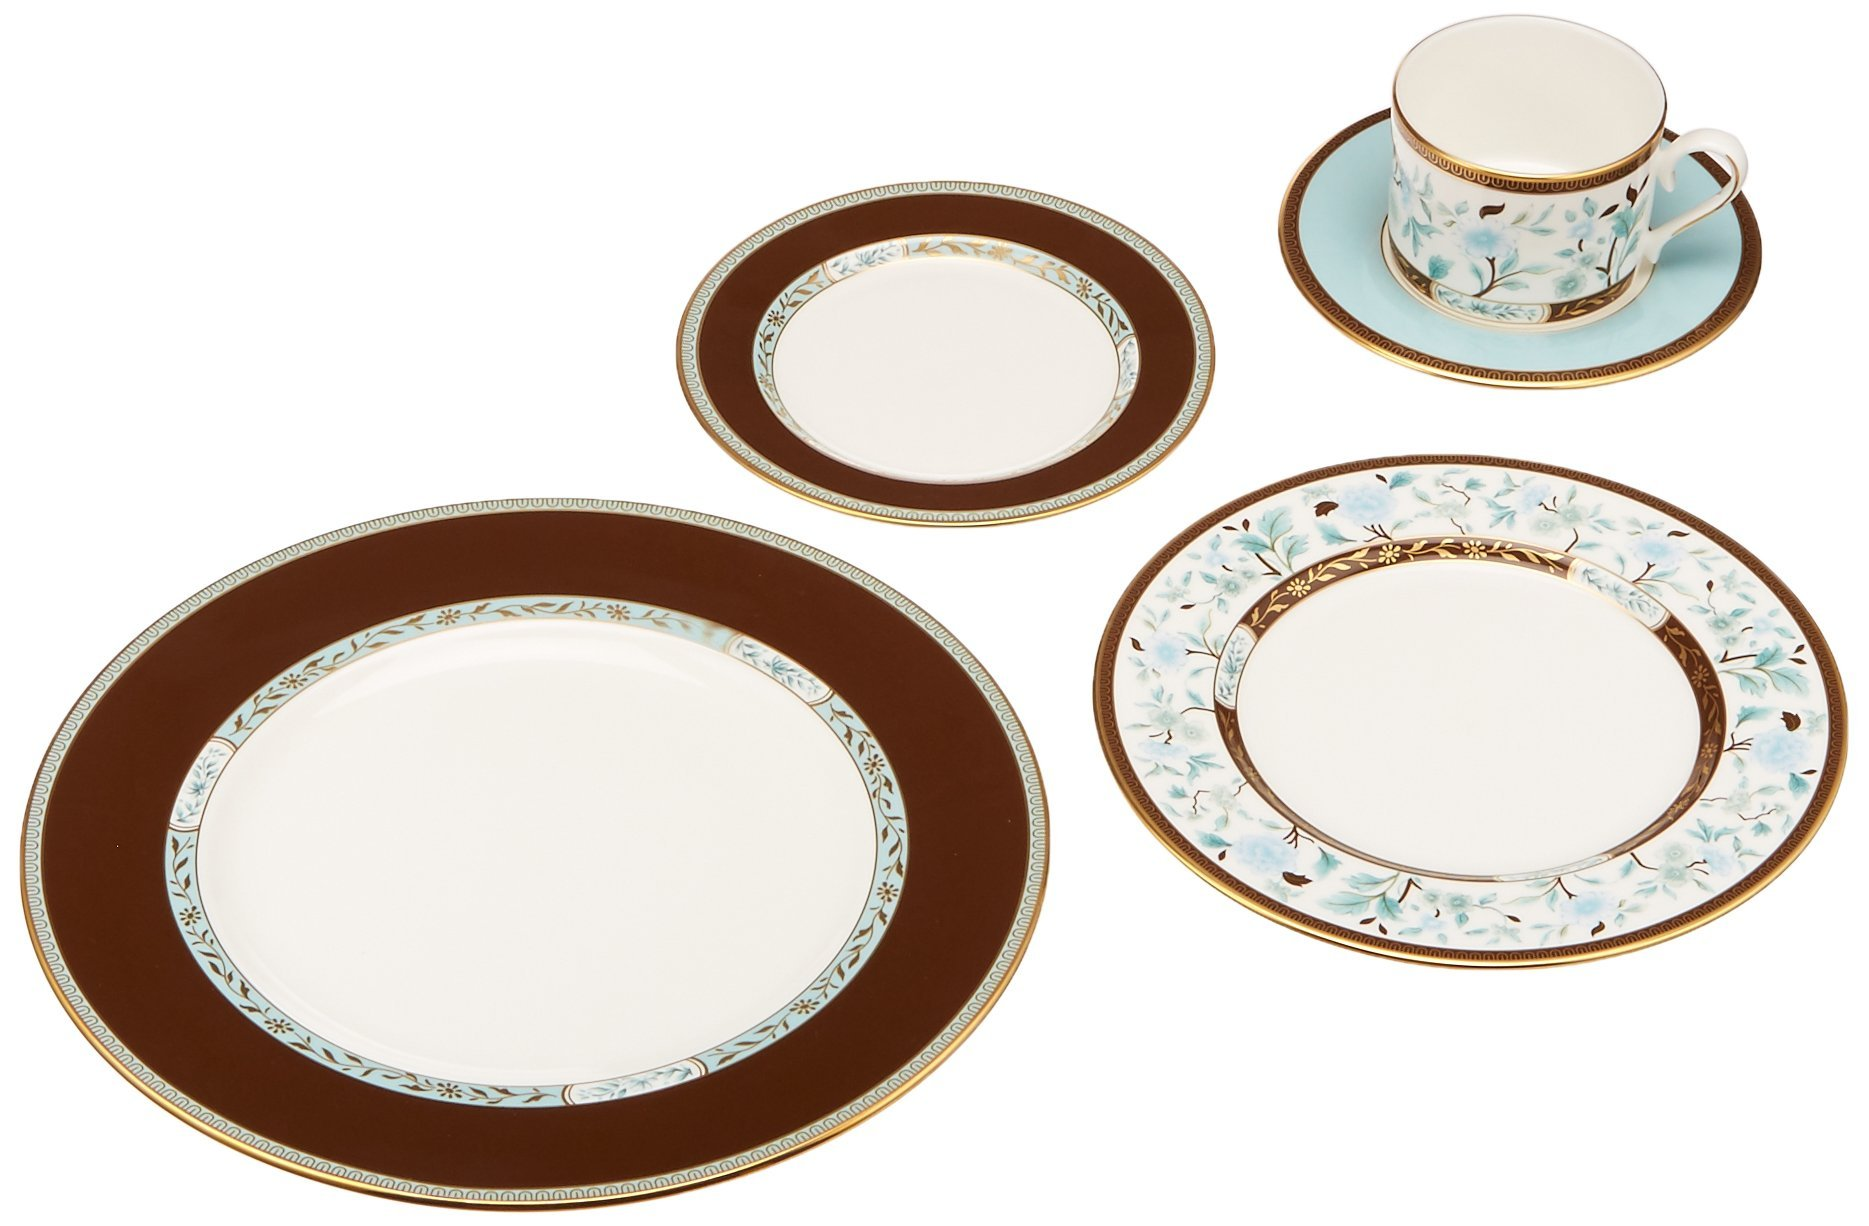 Lenox Marchesa 5-Piece Place Setting, Palatial Garden - Crafted of lenox fine white bone China Accented with 24 karat gold Dishwasher safe - kitchen-tabletop, kitchen-dining-room, dinnerware-sets - 71CCjWDLgML -